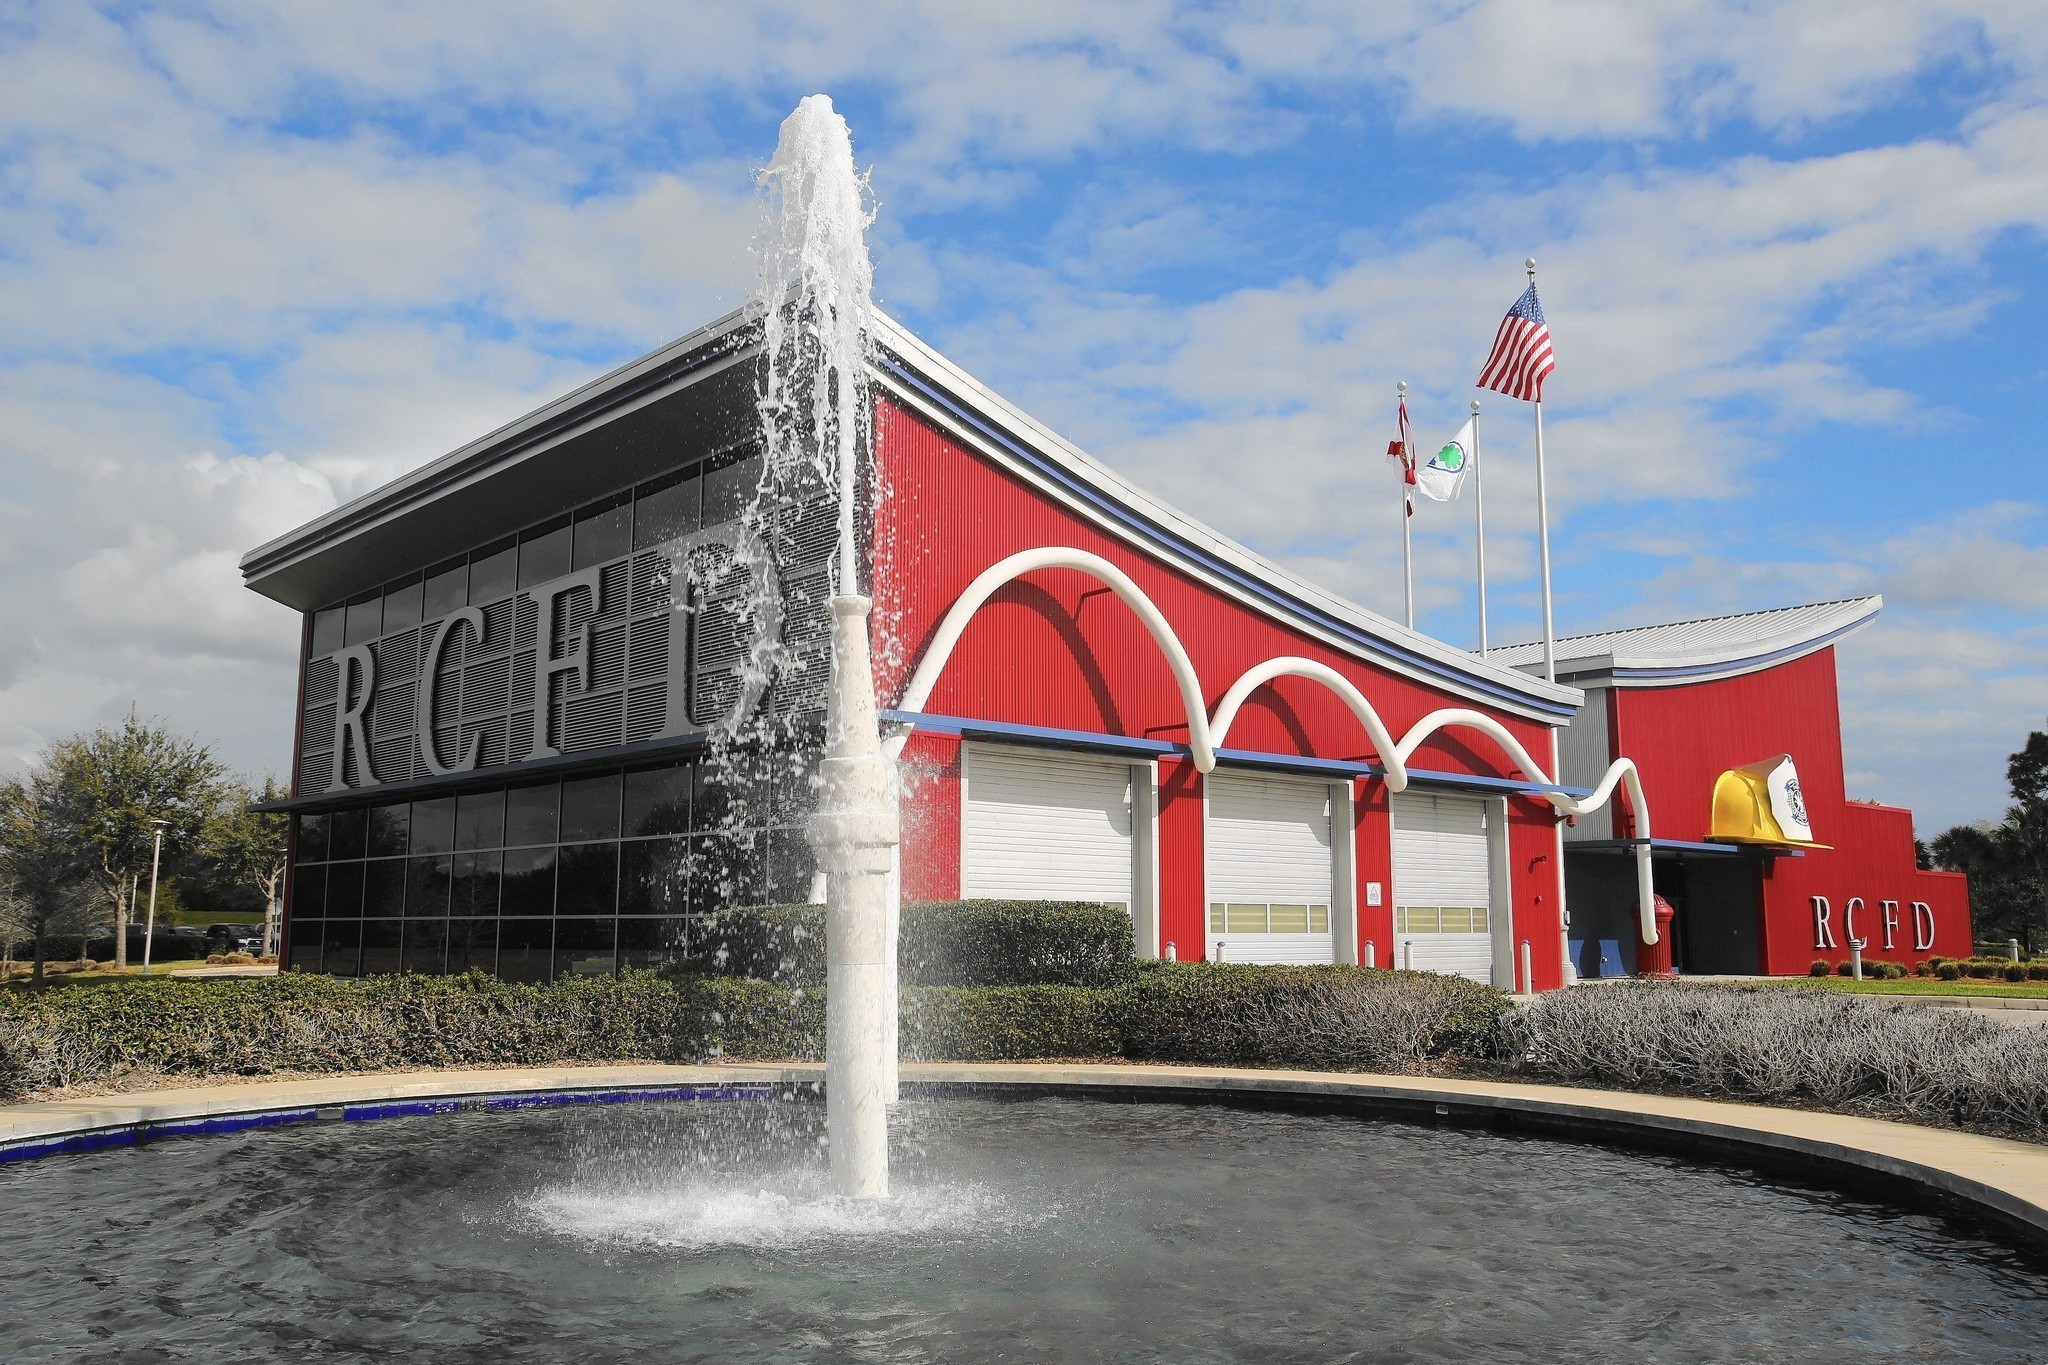 fire department serving disney wants to disband special